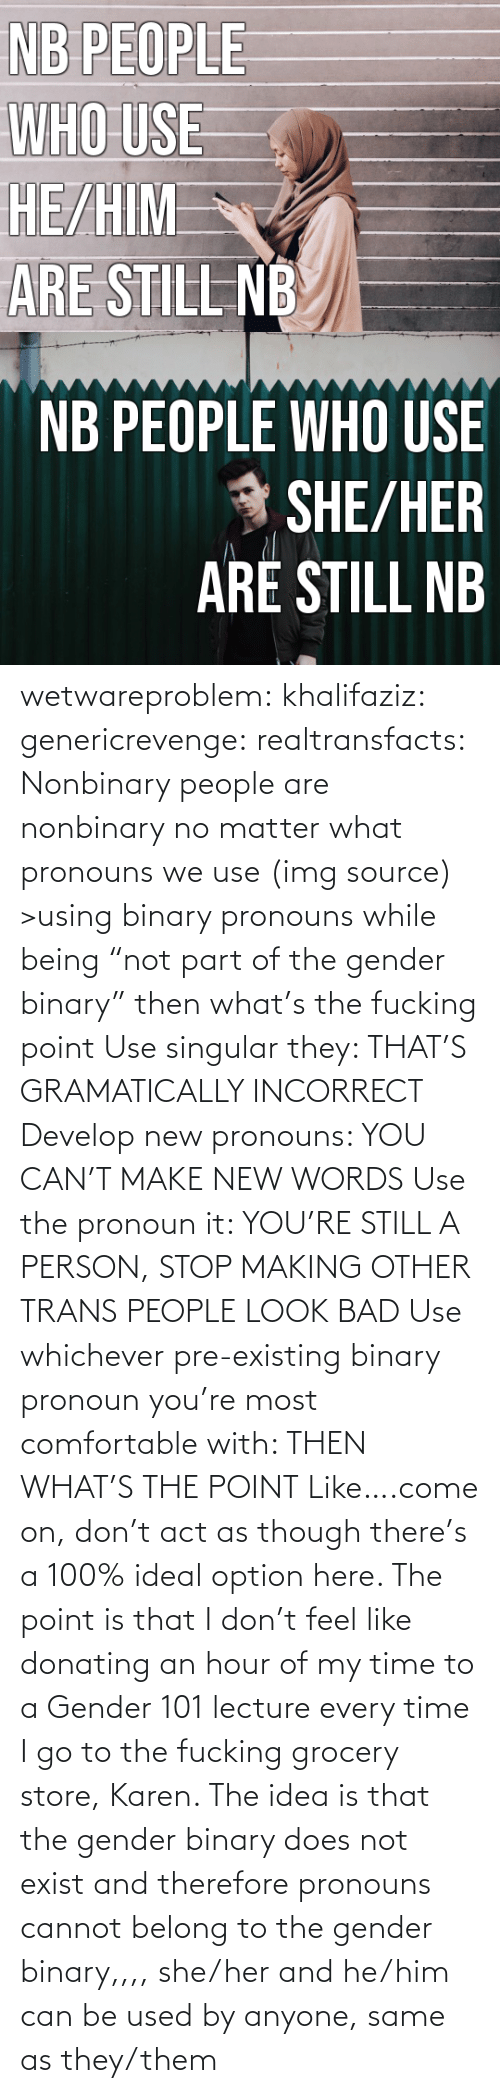 "No Matter What: NB PEOPLE  WHO USE  HE/HIM  ARE STILL NB   NB PEOPLE WHO USE  * SHE/HER  ARÉ STILL NB wetwareproblem: khalifaziz:   genericrevenge:   realtransfacts: Nonbinary people are nonbinary no matter what pronouns we use (img source)   >using binary pronouns while being ""not part of the gender binary"" then what's the fucking point   Use singular they: THAT'S GRAMATICALLY INCORRECT Develop new pronouns: YOU CAN'T MAKE NEW WORDS Use the pronoun it: YOU'RE STILL A PERSON, STOP MAKING OTHER TRANS PEOPLE LOOK BAD Use whichever pre-existing binary pronoun you're most comfortable with: THEN WHAT'S THE POINT Like….come on, don't act as though there's a 100% ideal option here.    The point is that I don't feel like donating an hour of my time to a Gender 101 lecture every time I go to the fucking grocery store, Karen.     The idea is that the gender binary does not exist and therefore pronouns cannot belong to the gender binary,,,, she/her and he/him can be used by anyone, same as they/them"